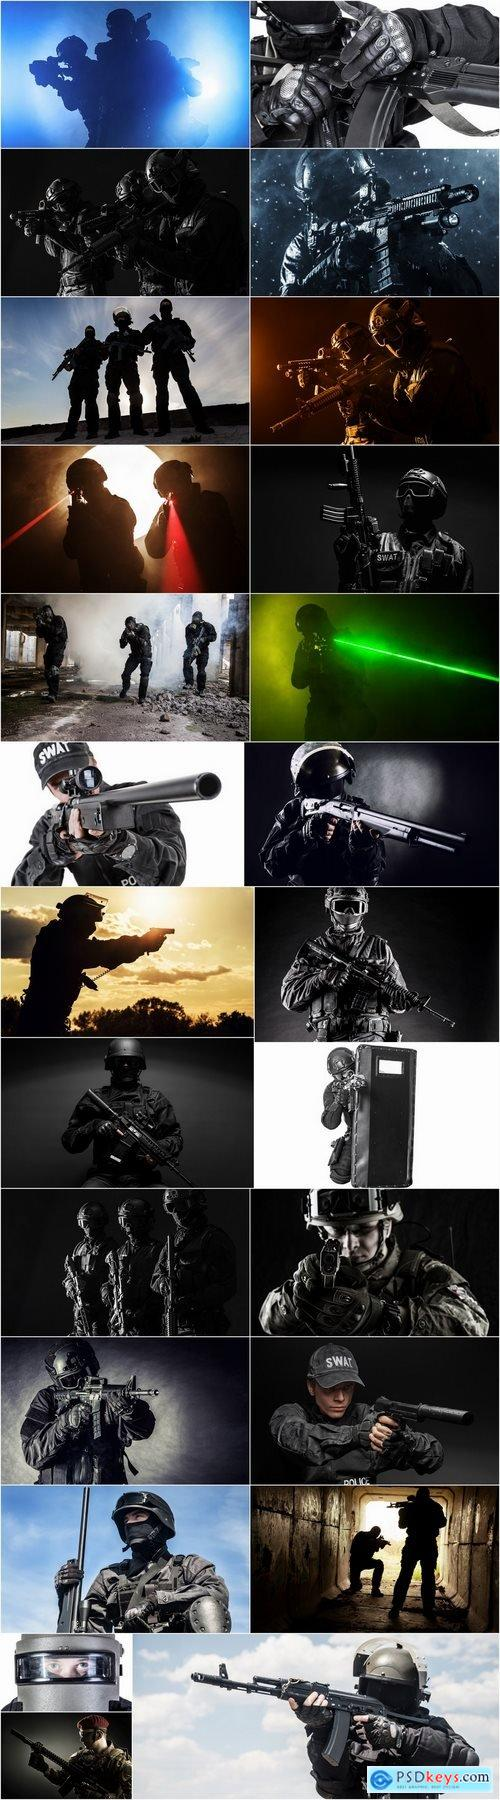 Special forces antiterrorist squad soldier soldiers police